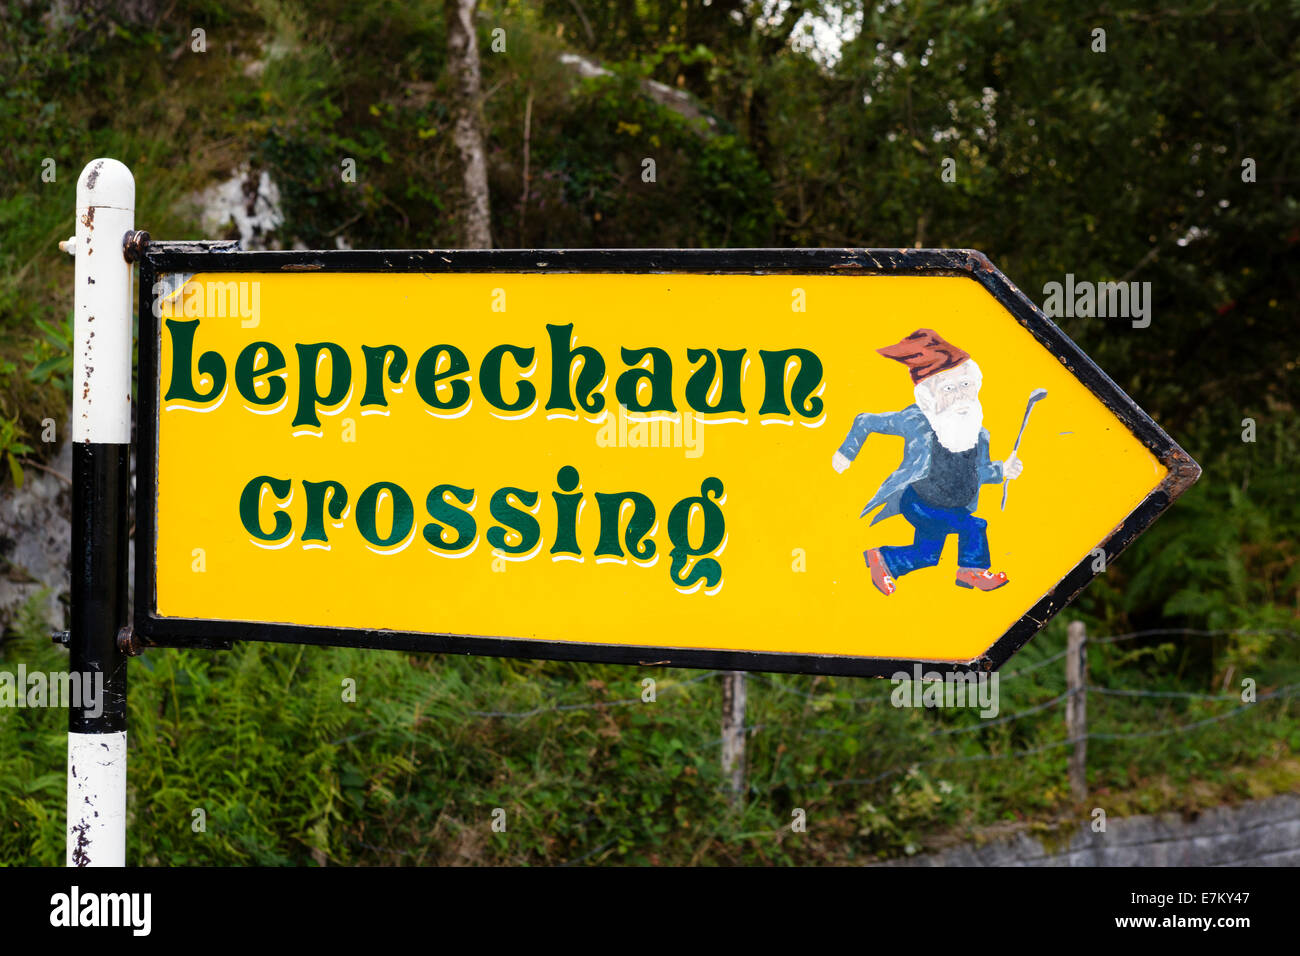 Leprechaun Crossing sign at Ladies View on the N71 Ring of Kerry, Killarney National Park, County Kerry, Republic - Stock Image